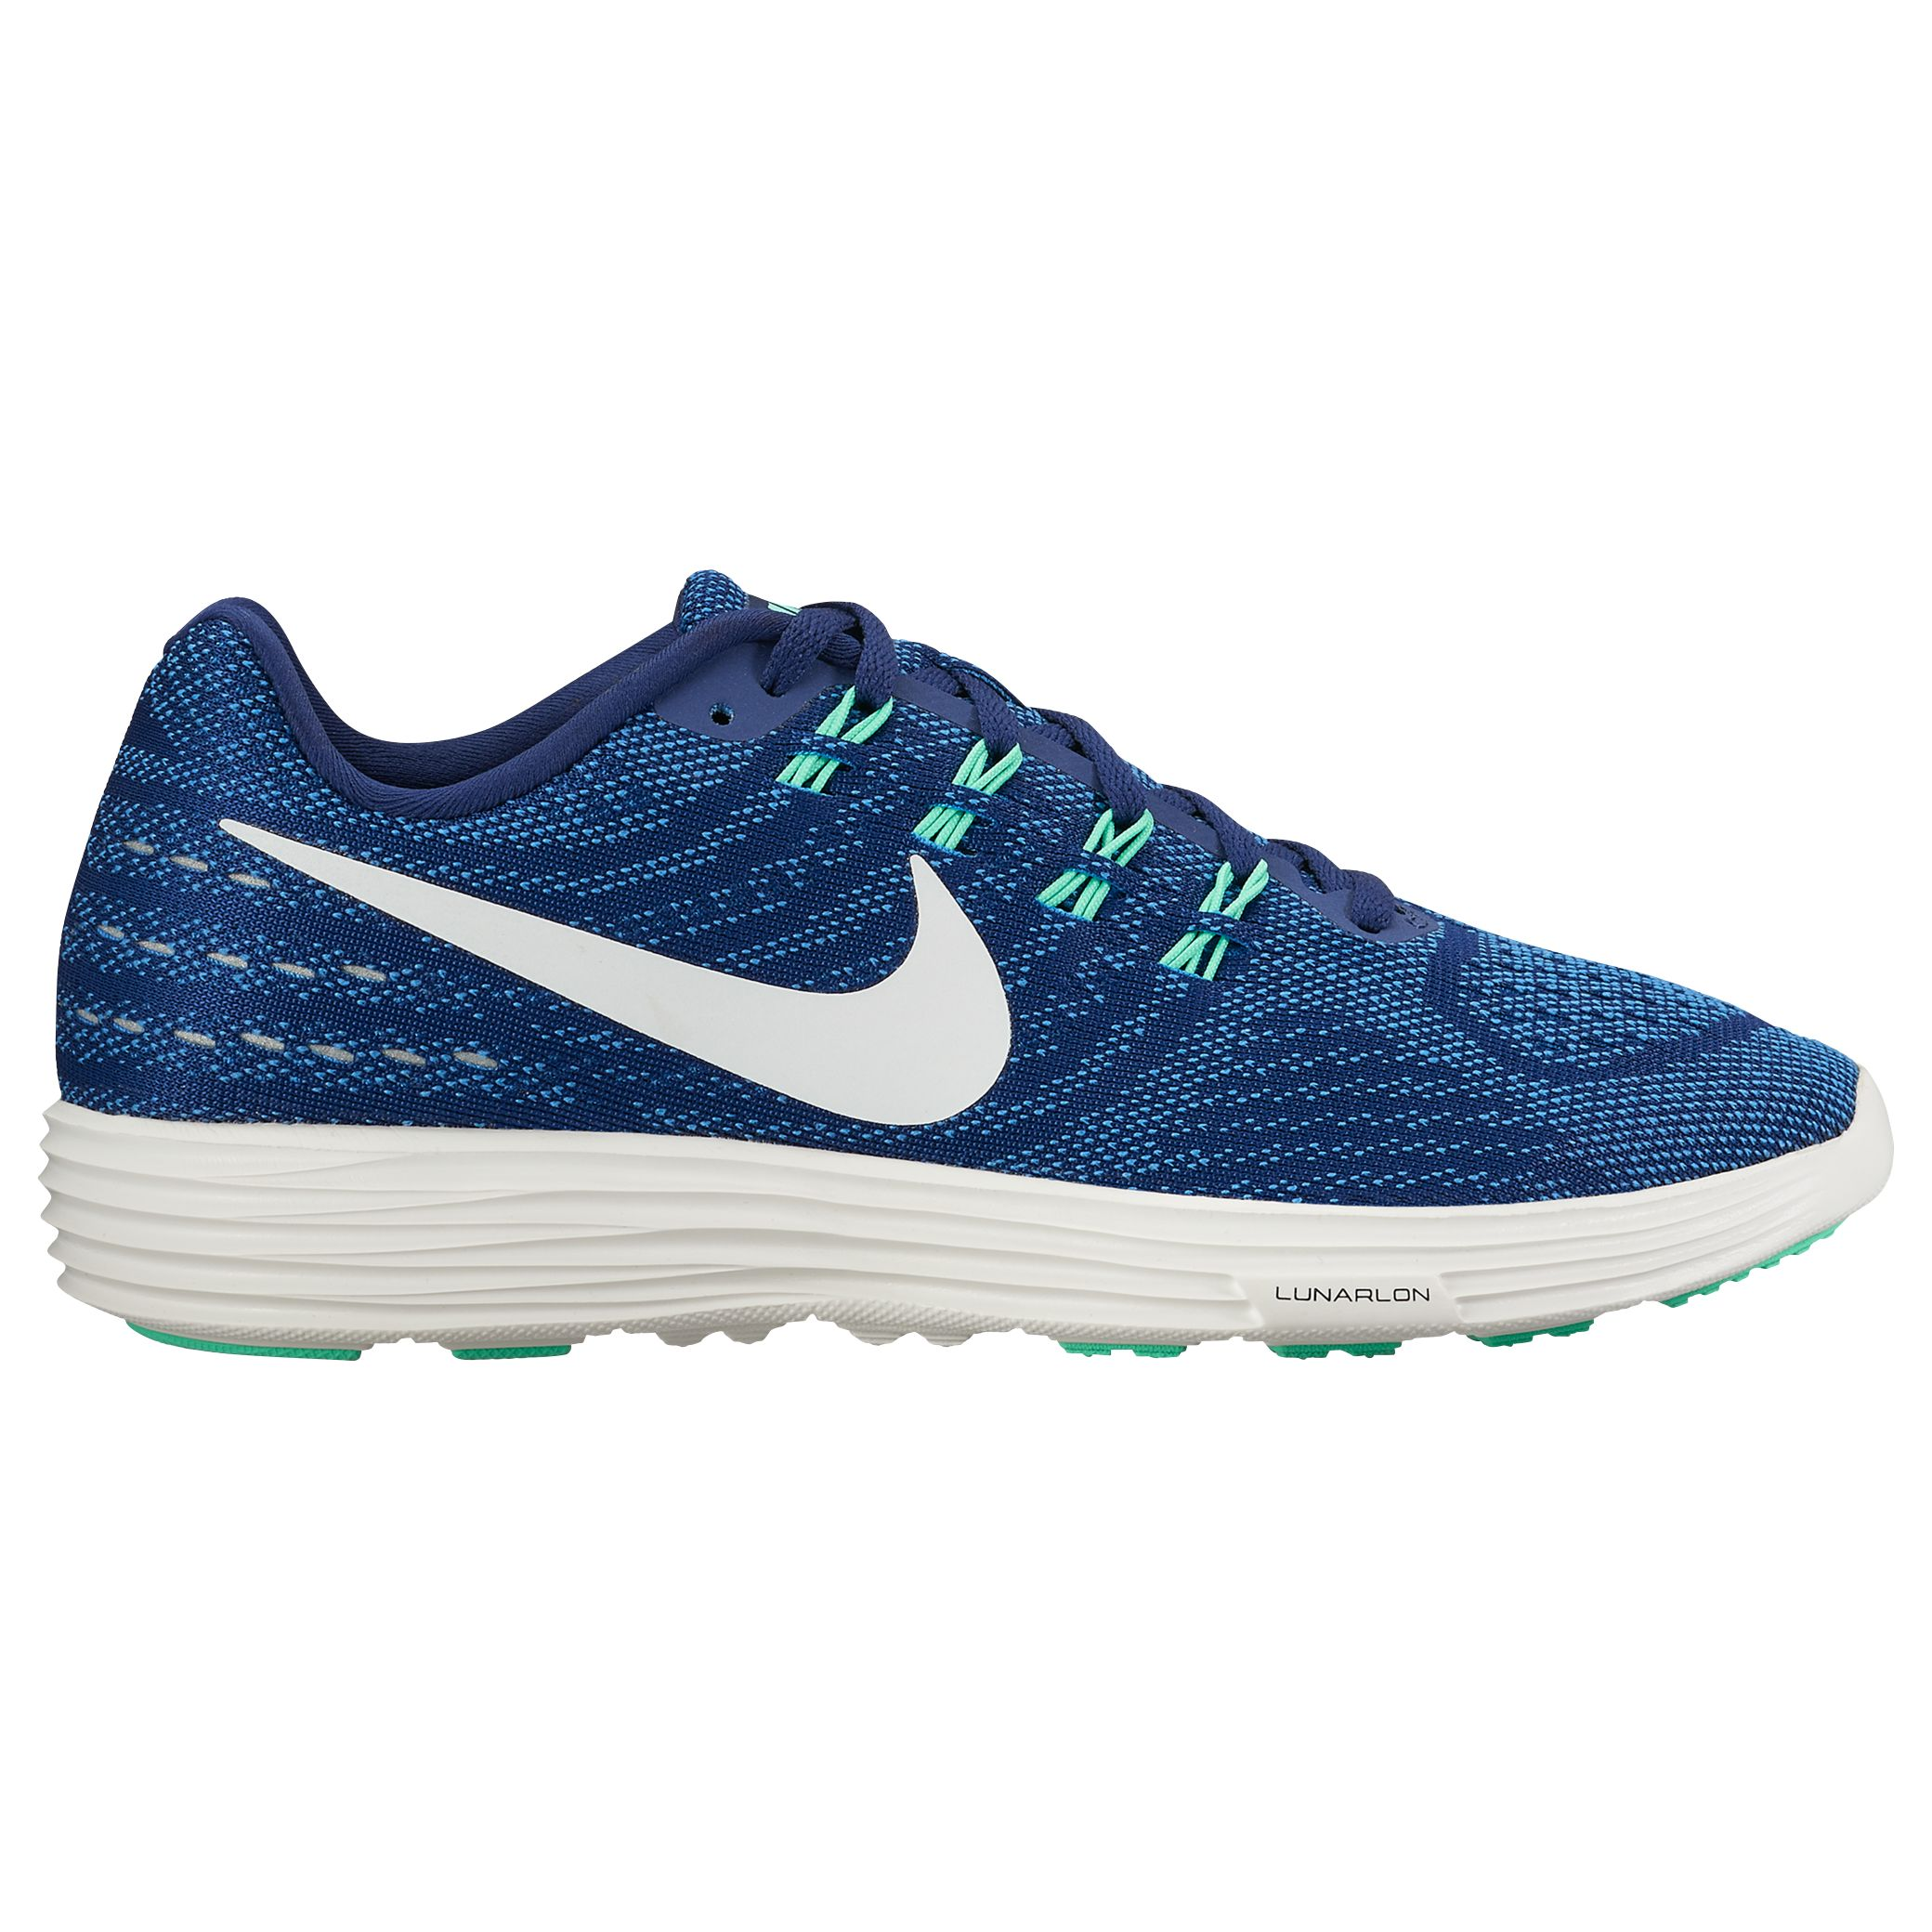 on sale 56f67 6a5d4 Nike LunarTempo 2 Women s Running Shoes, Blue White at John Lewis   Partners